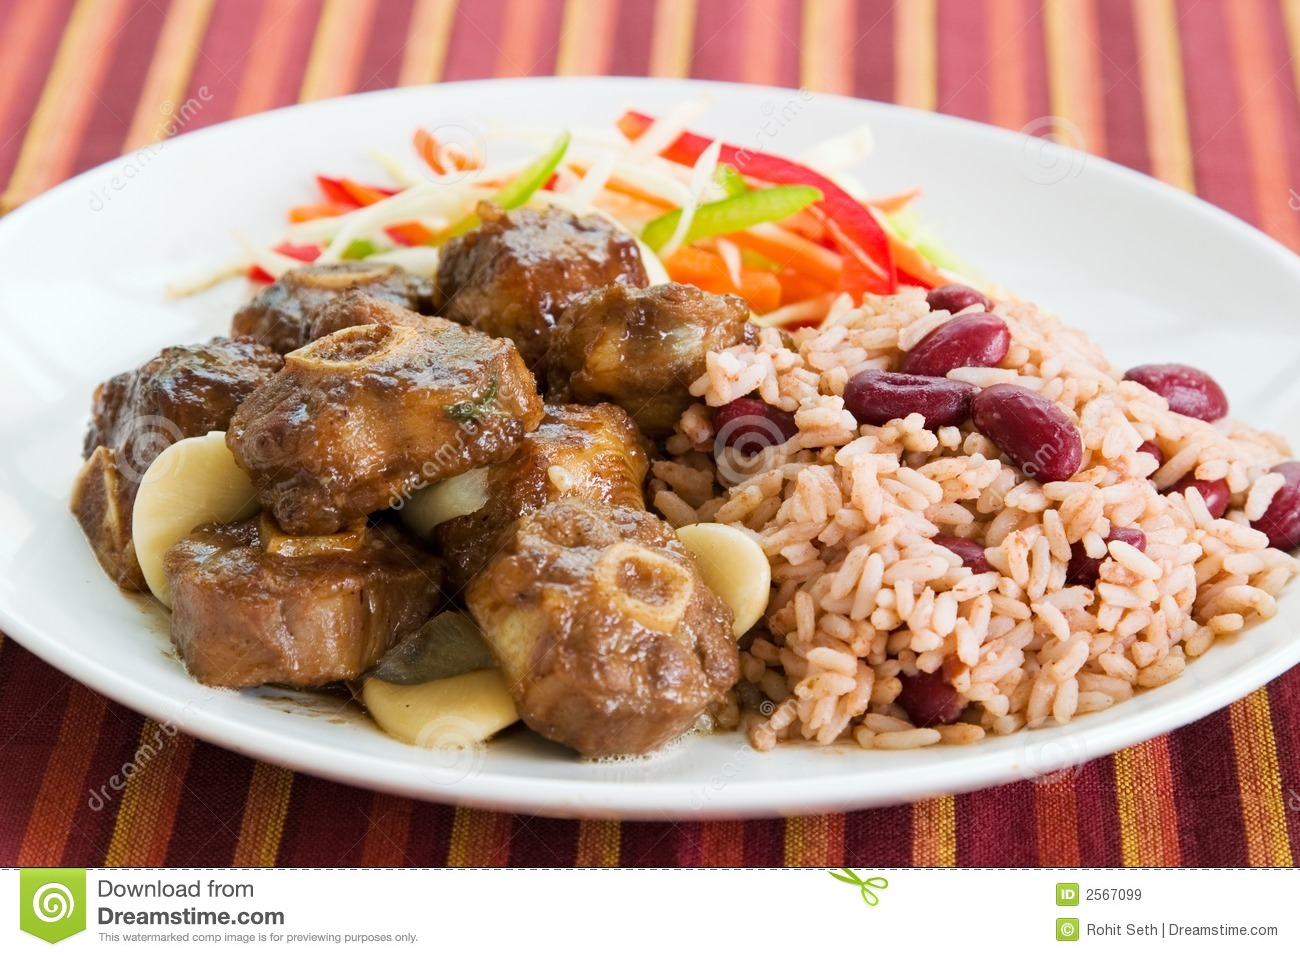 Where to buy oxtail in toronto : toronto